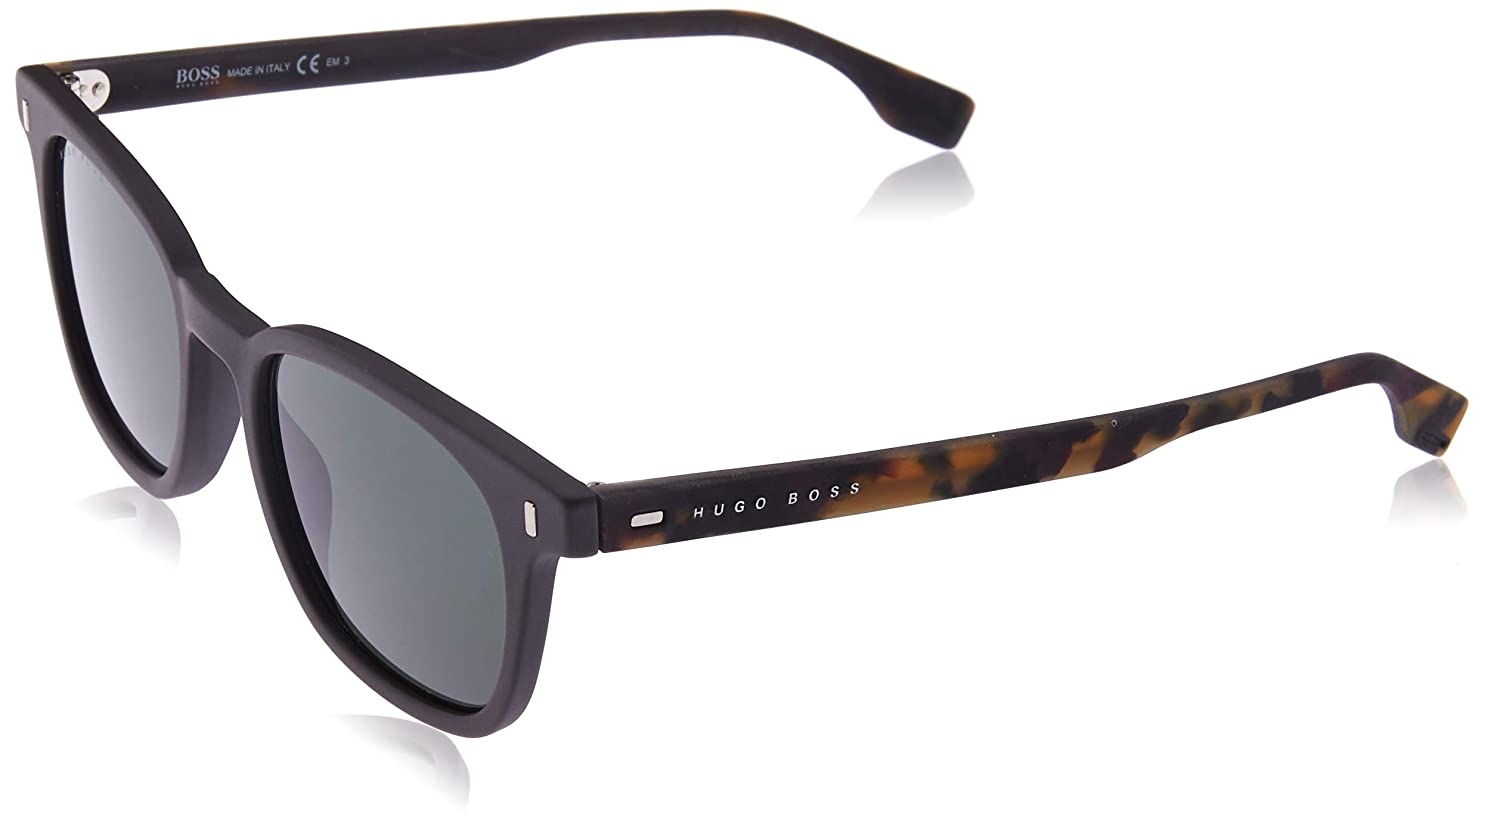 Amazon.com: BOSS by Hugo Boss - Gafas de sol polarizadas ...